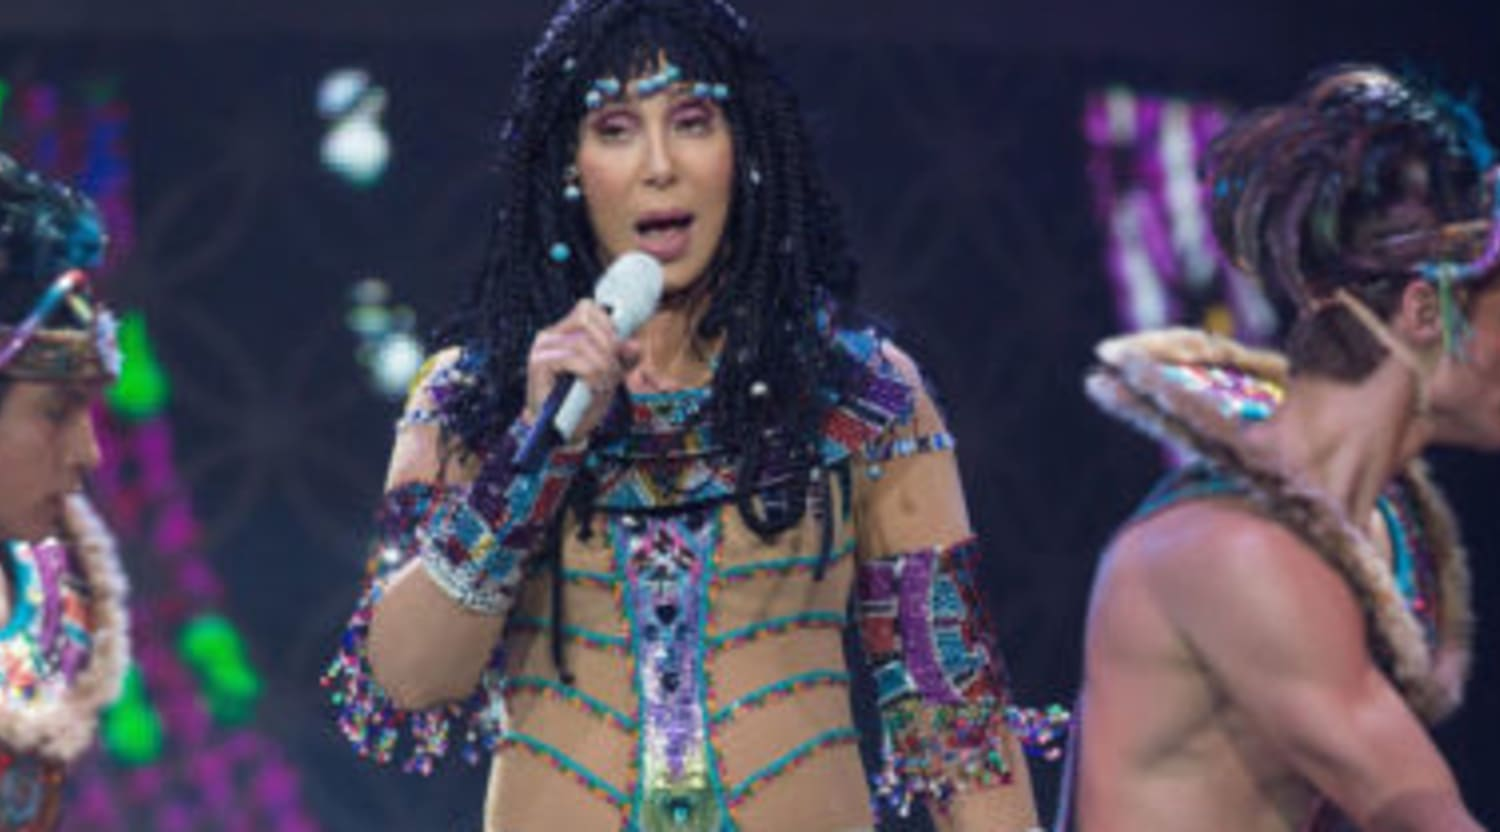 Chicago Auto Show Dates >> Cher Tickets - Cher Concert Tickets and Tour Dates ...